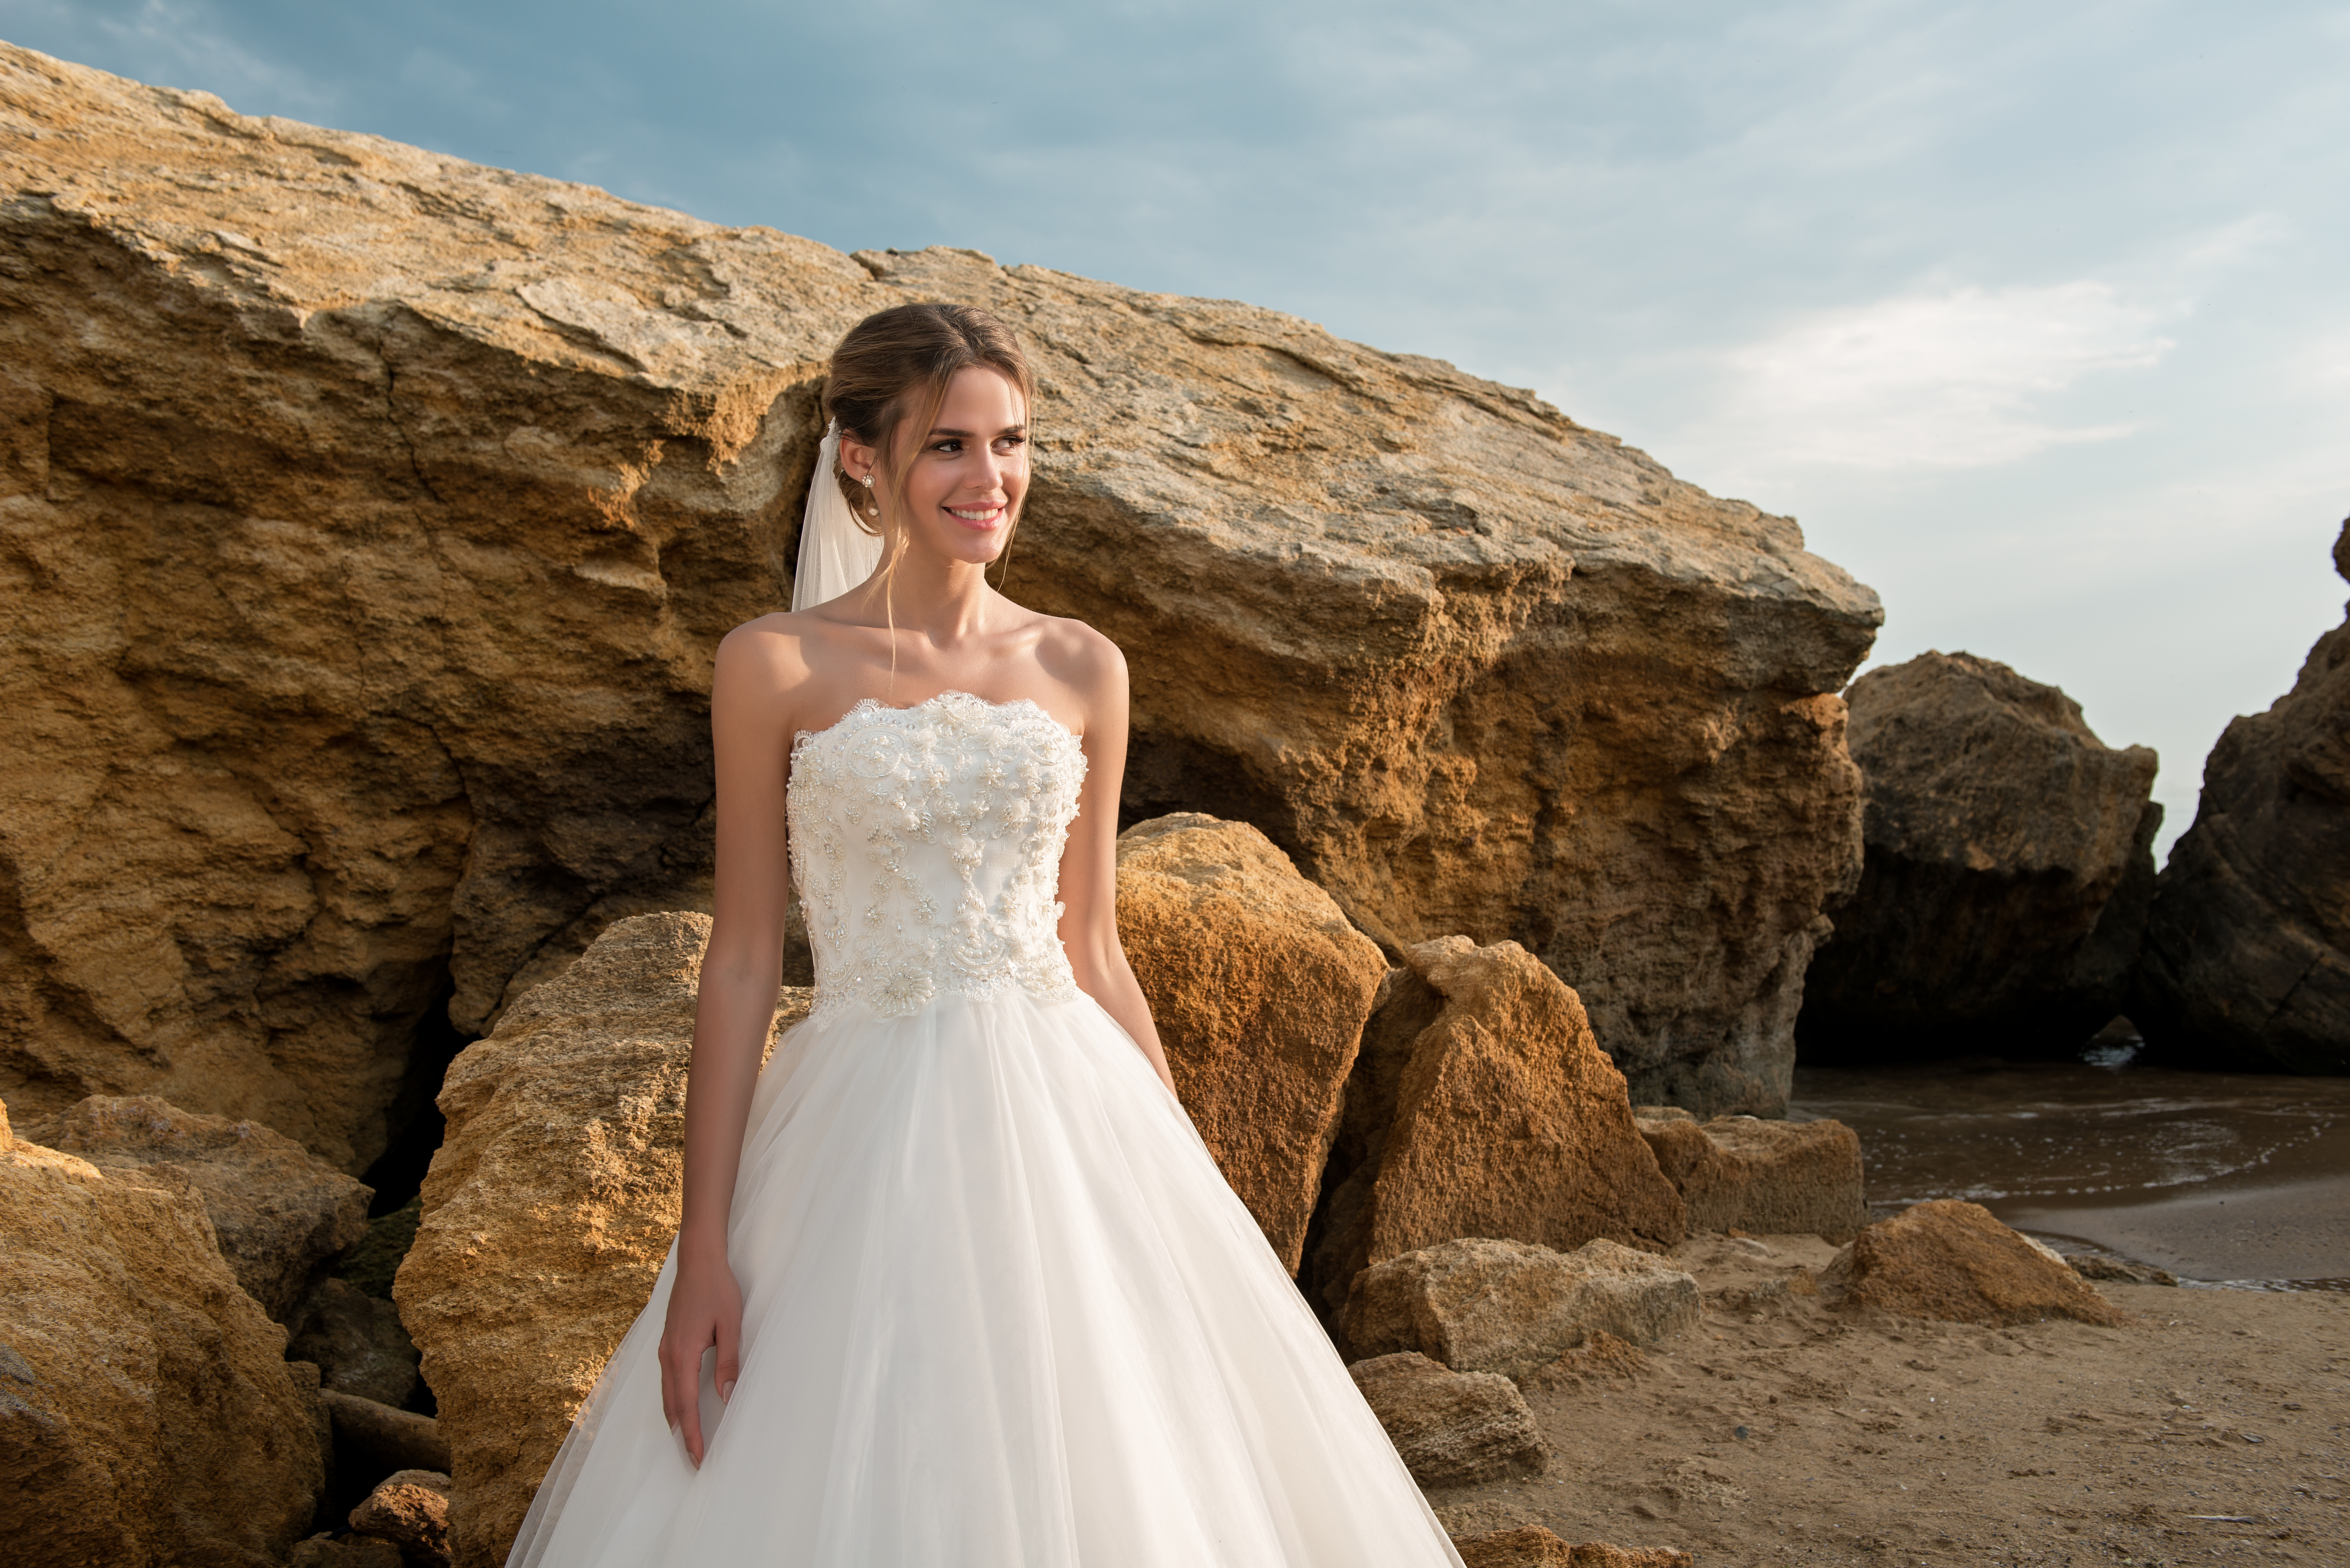 Wedding dress with open shoulders and lush skirt-1